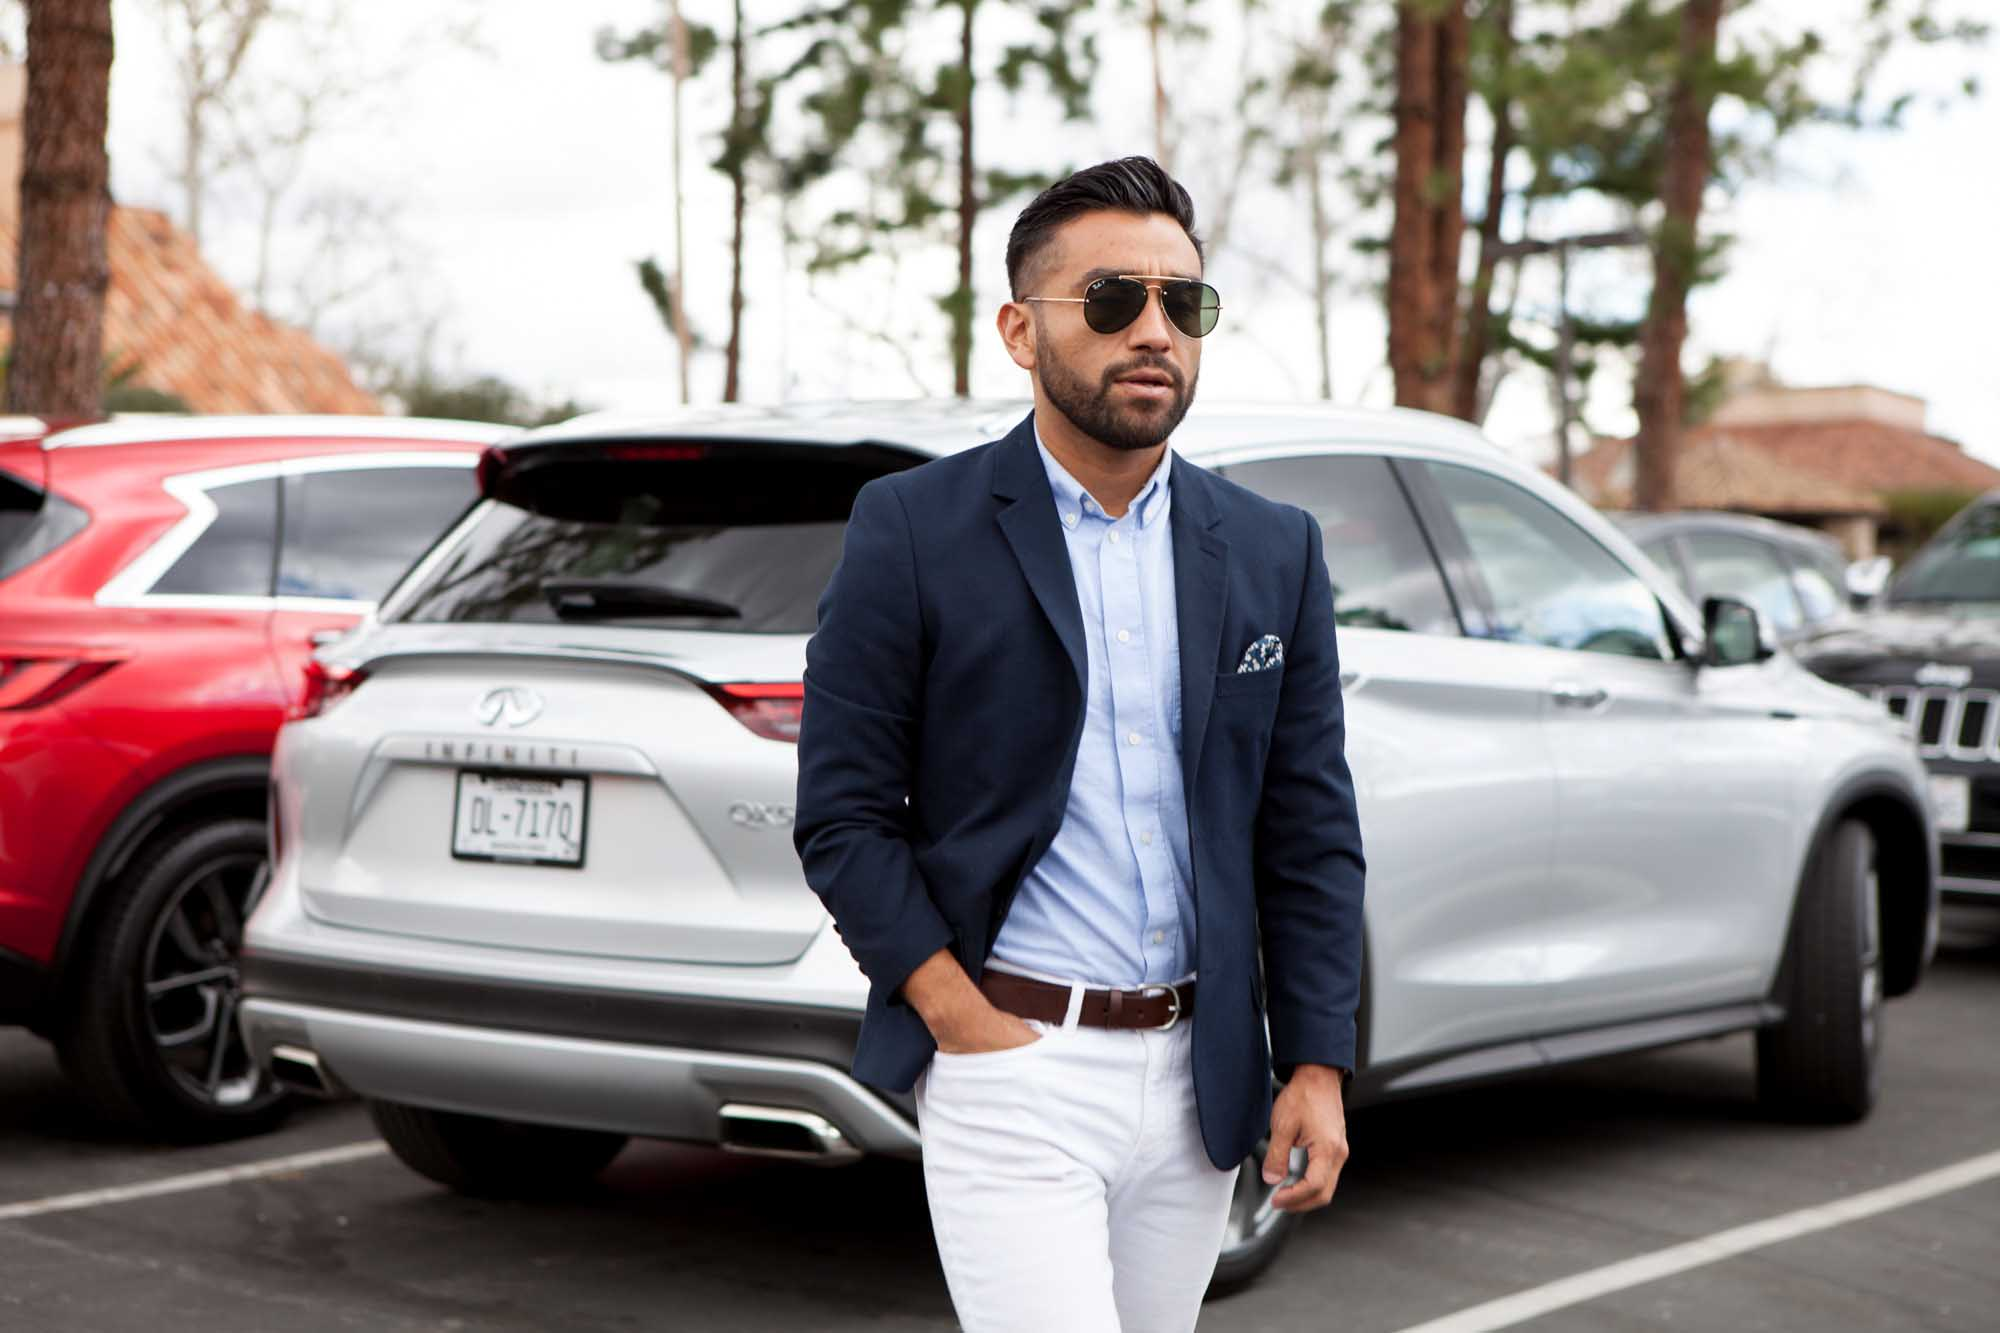 J Fig - @rule_of_thumbs in front of Infiniti QX-50 |  Car Photography | Fashion Photography | Male Model  | Shot in Los Angeles, California for Crispin Porter + Bogusky